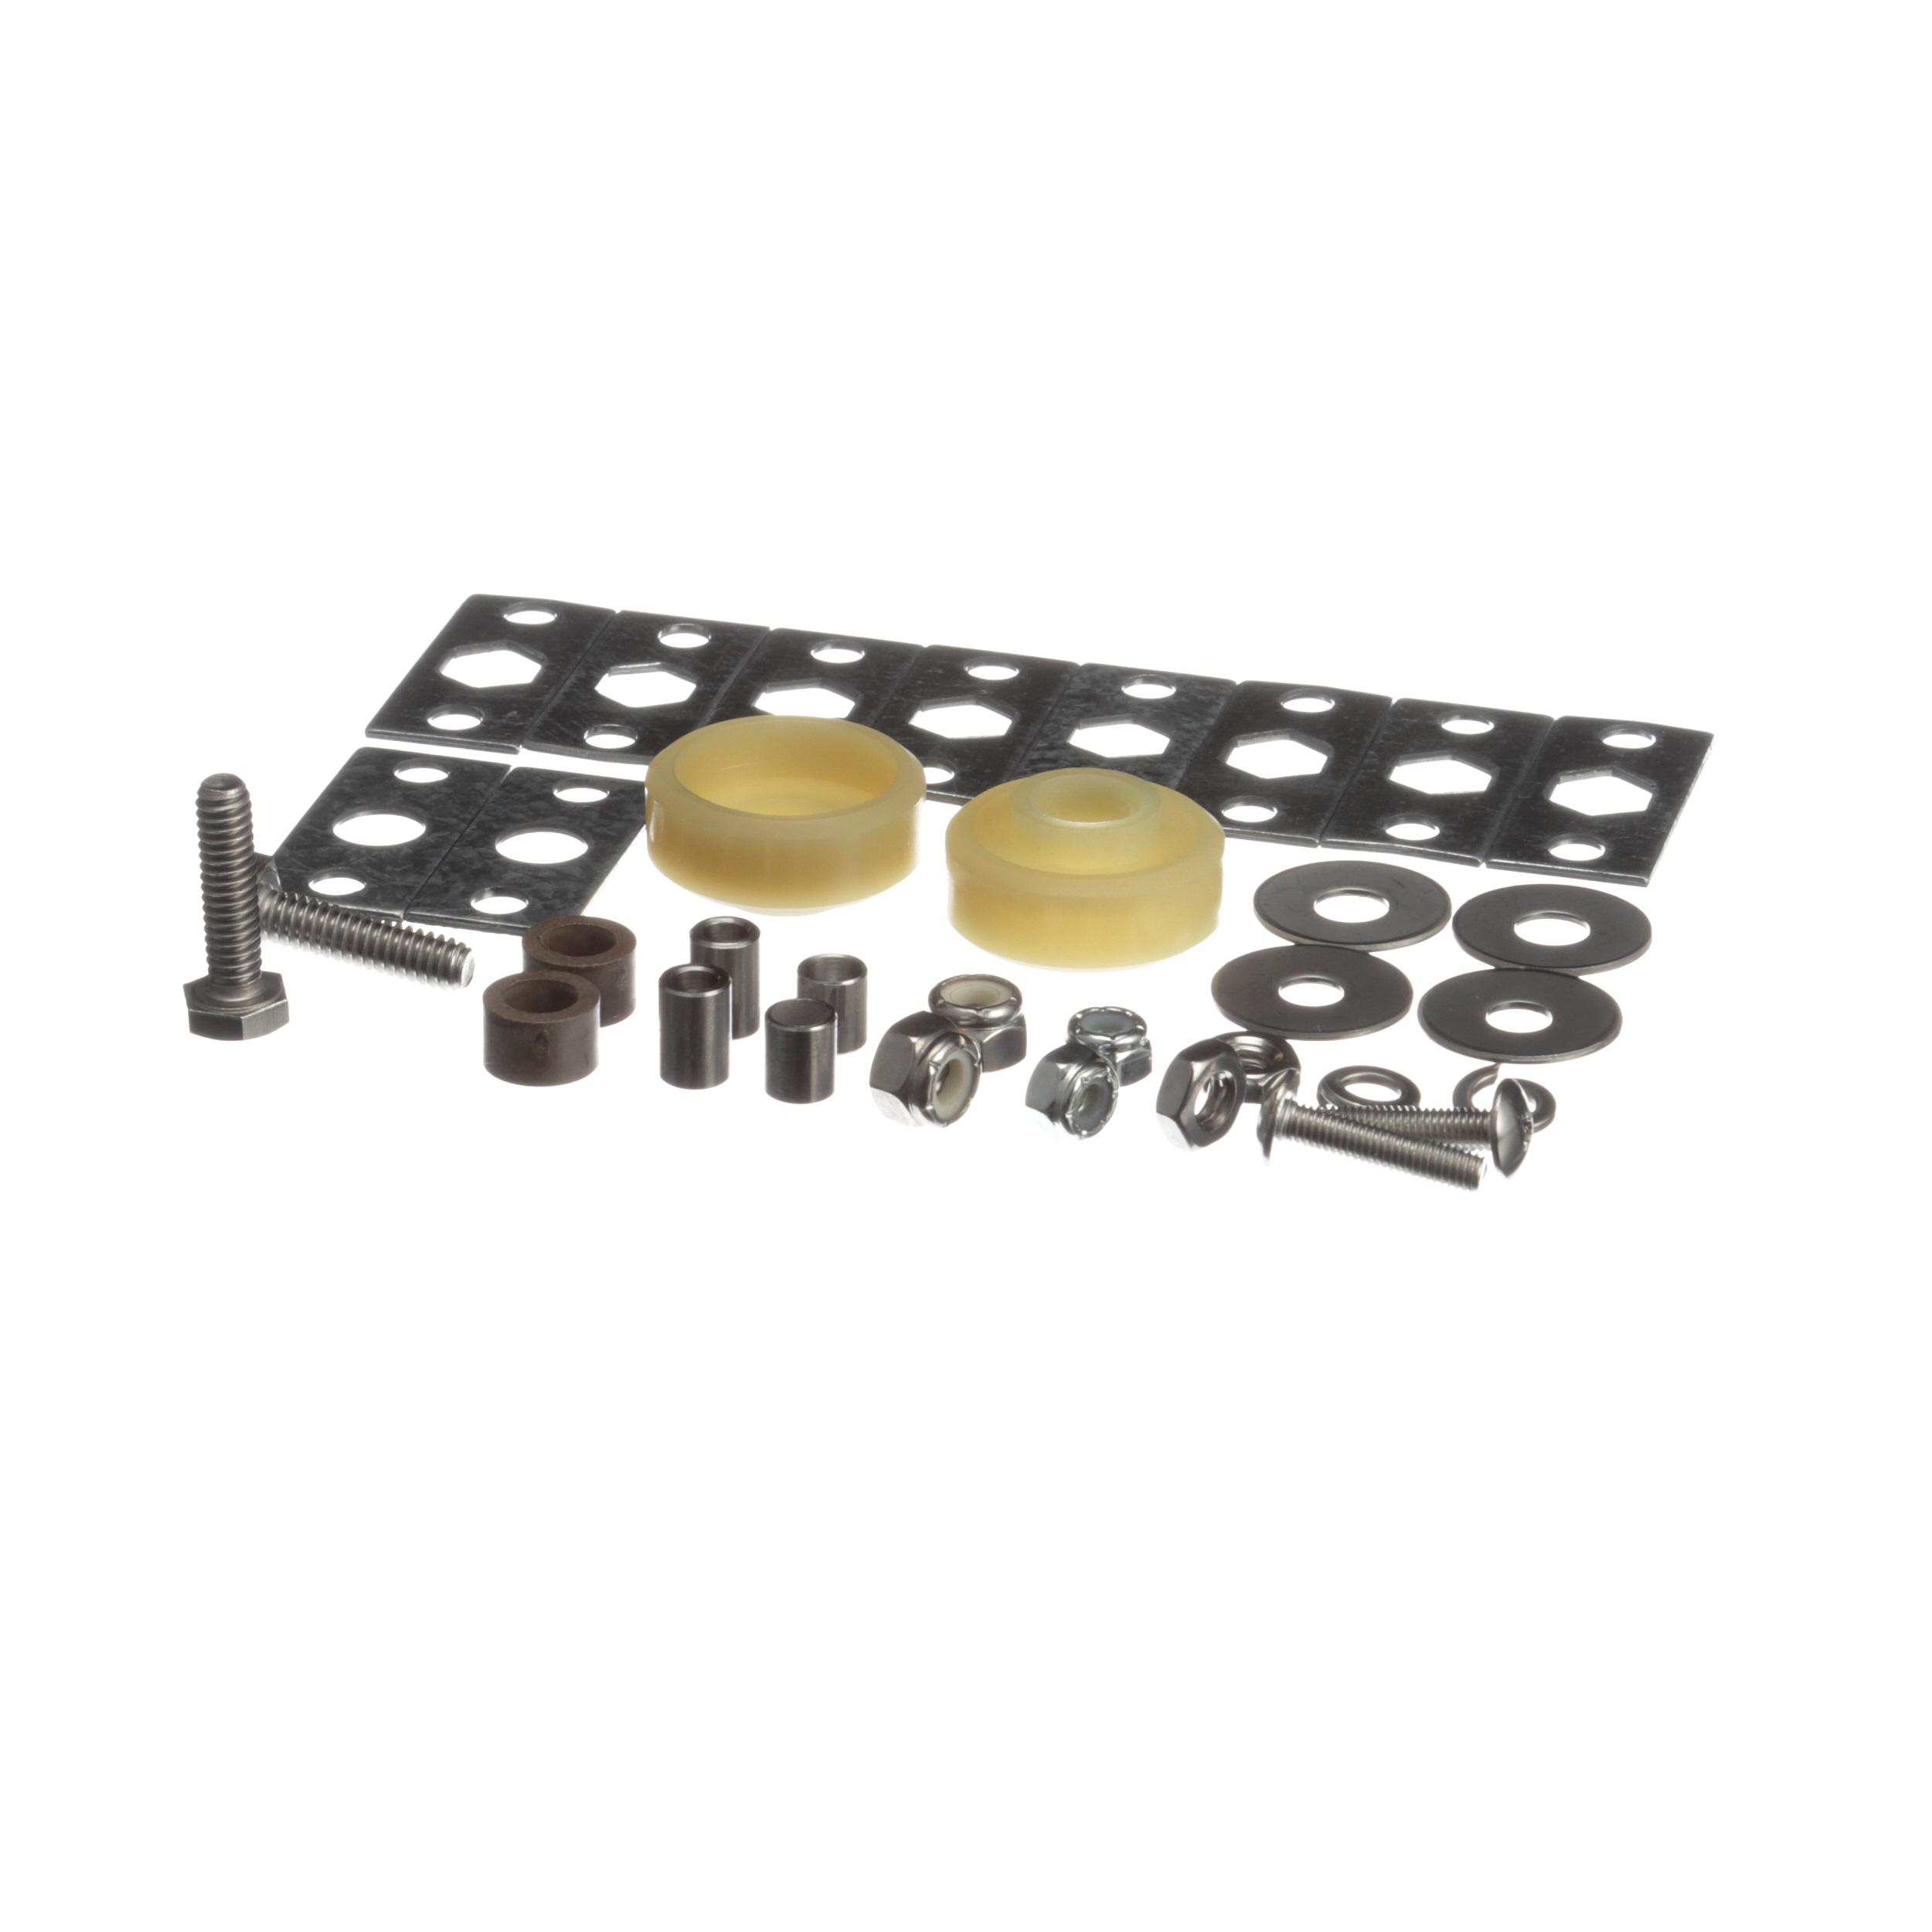 WINSTON PRODUCTS ROLLER KIT ALL DRAWERS